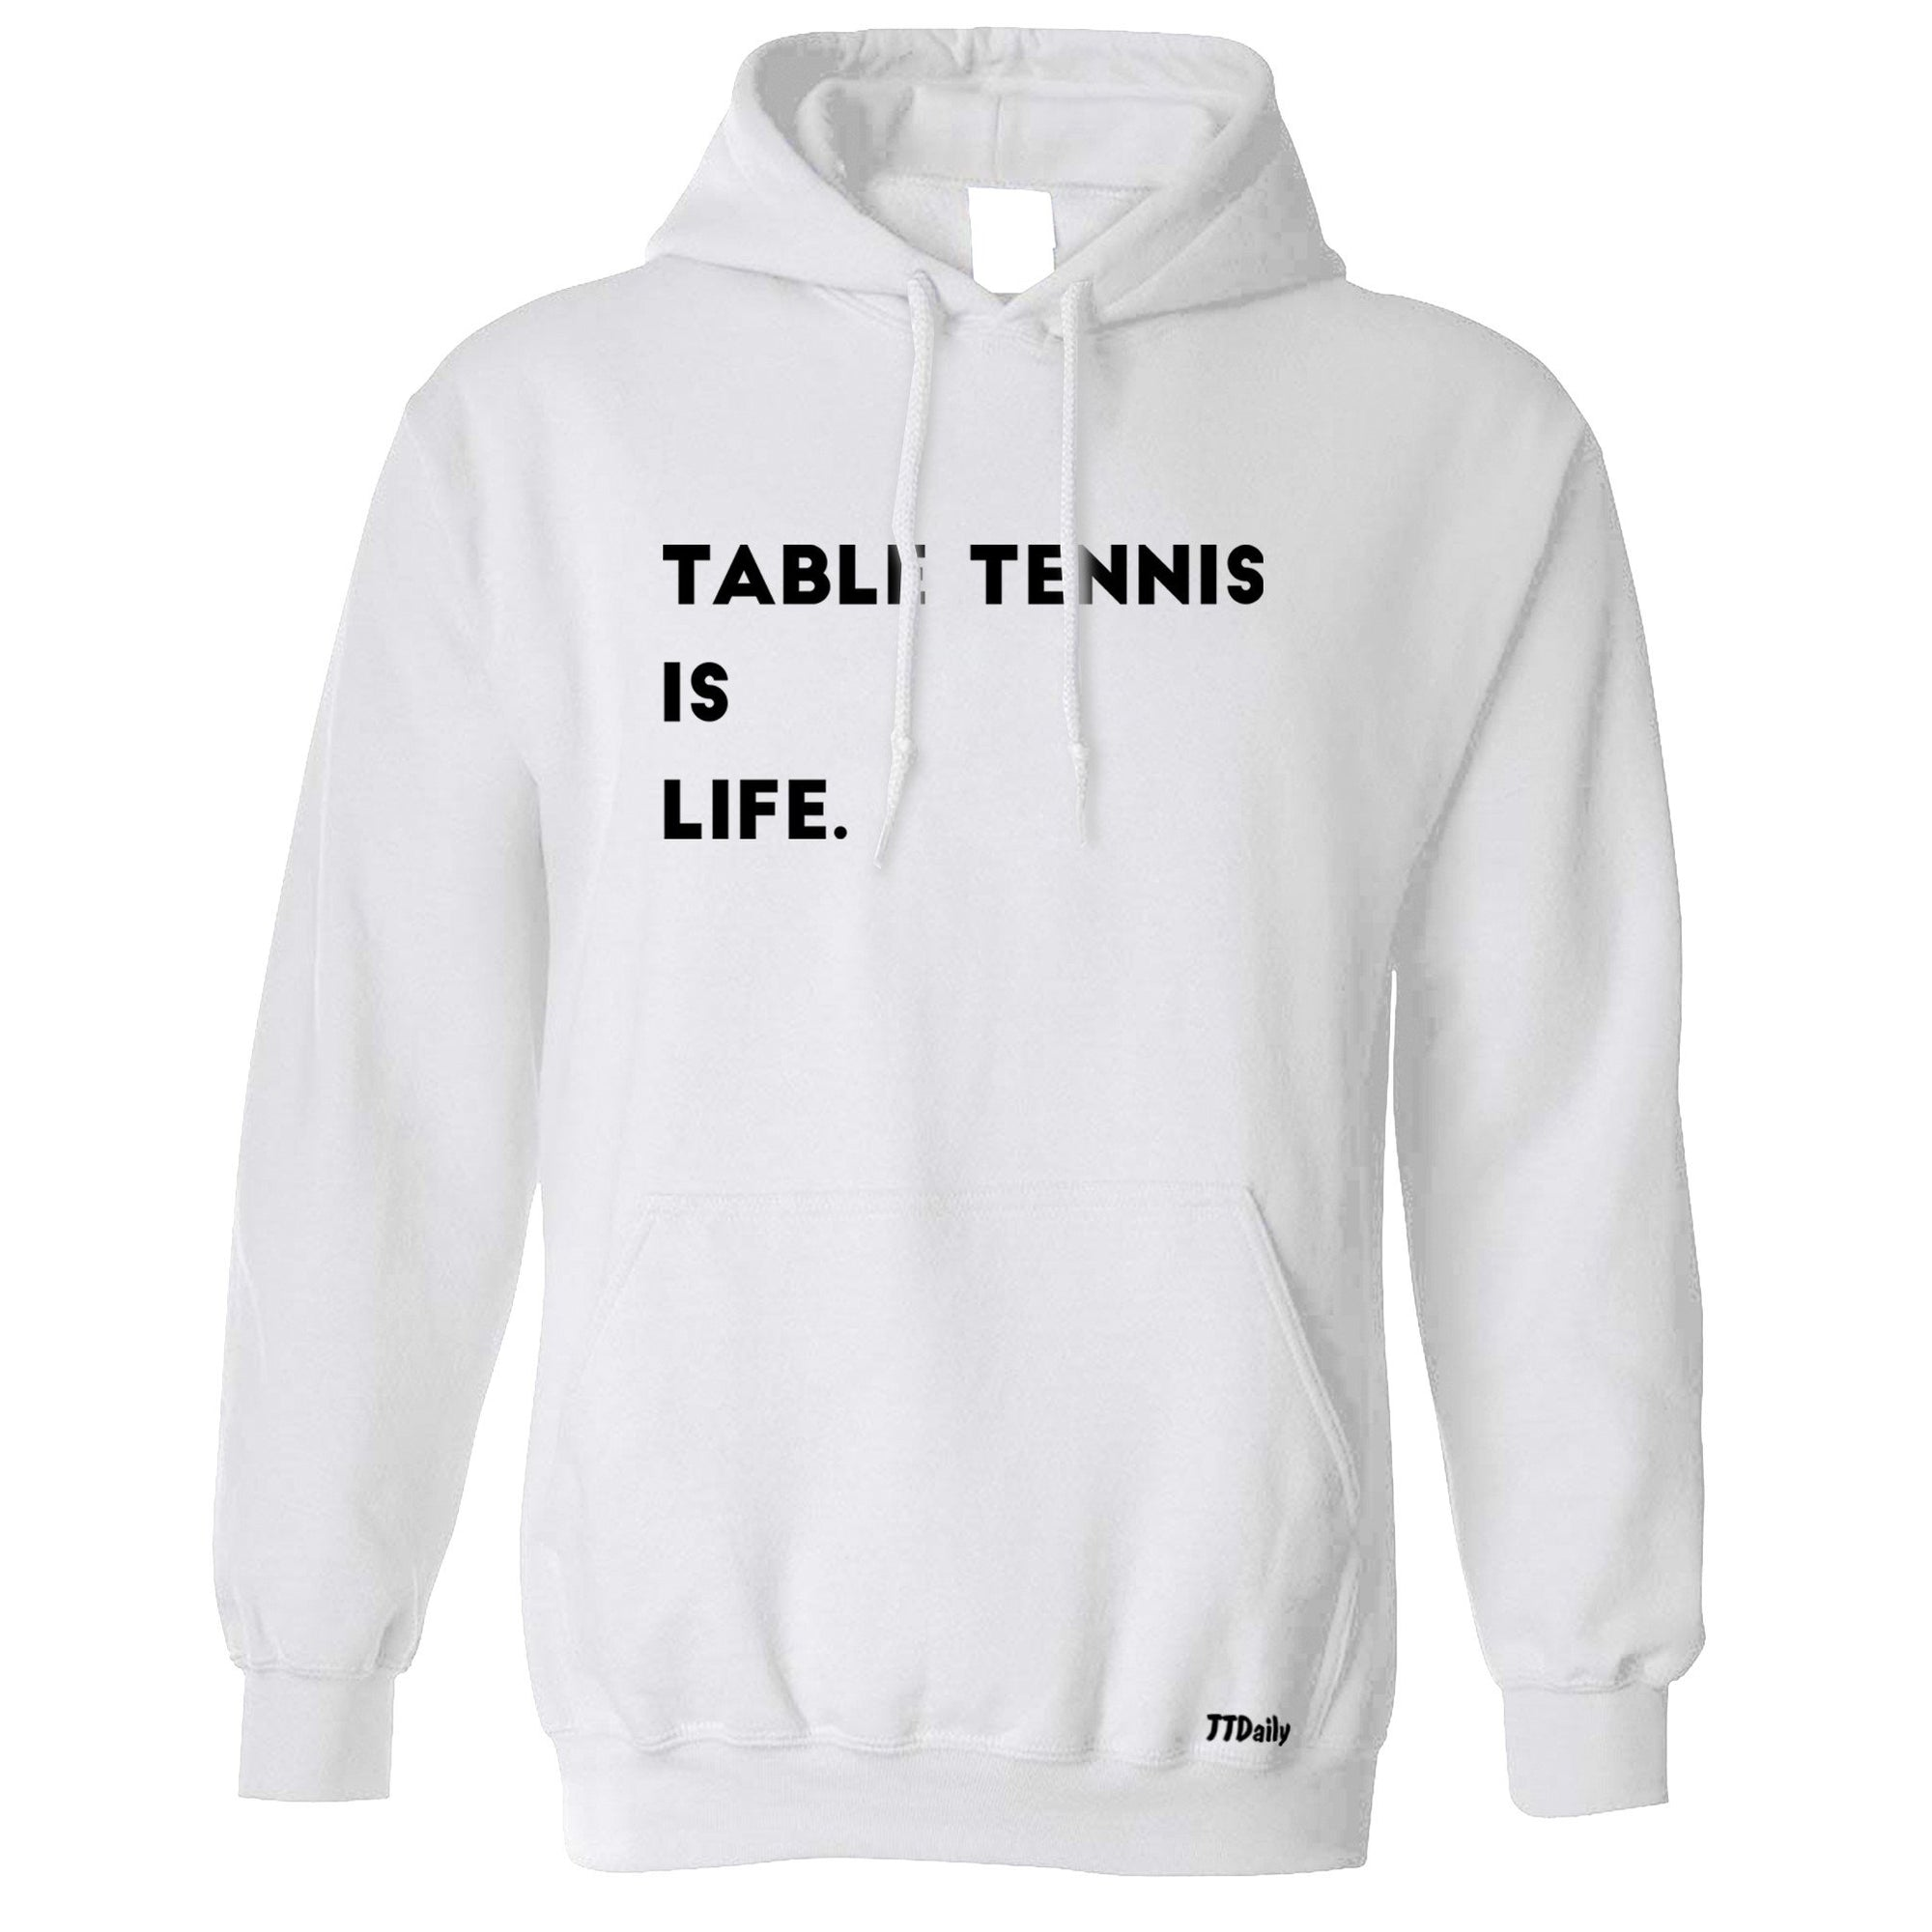 Table Tennis Is Life Hoodie Hooded Jumper